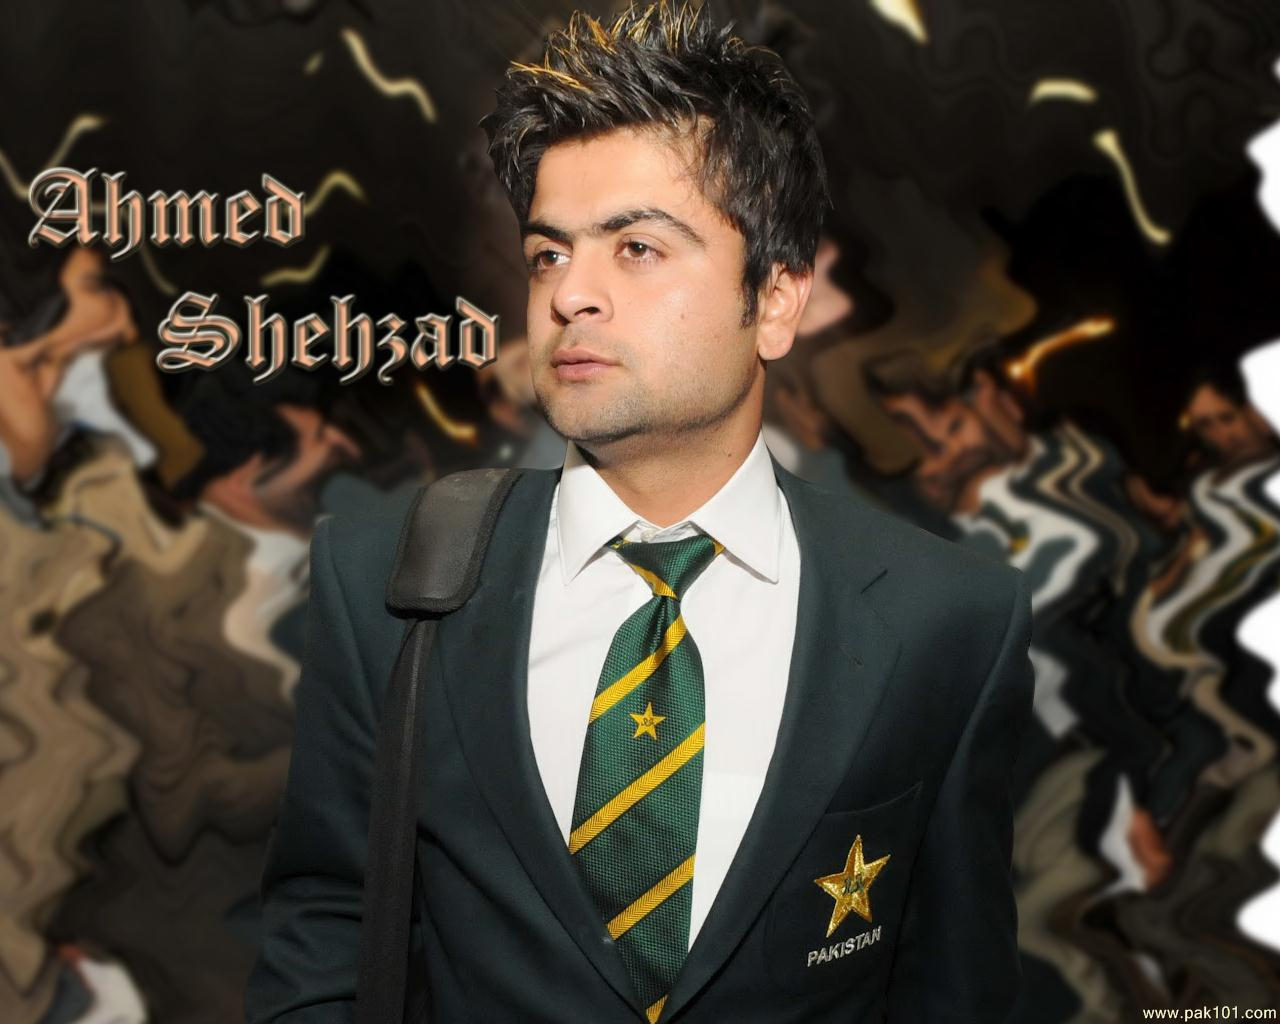 Cricketer Ahmed Shahzad Beautiful Wallpapers Its All About Cricket 1280x1024